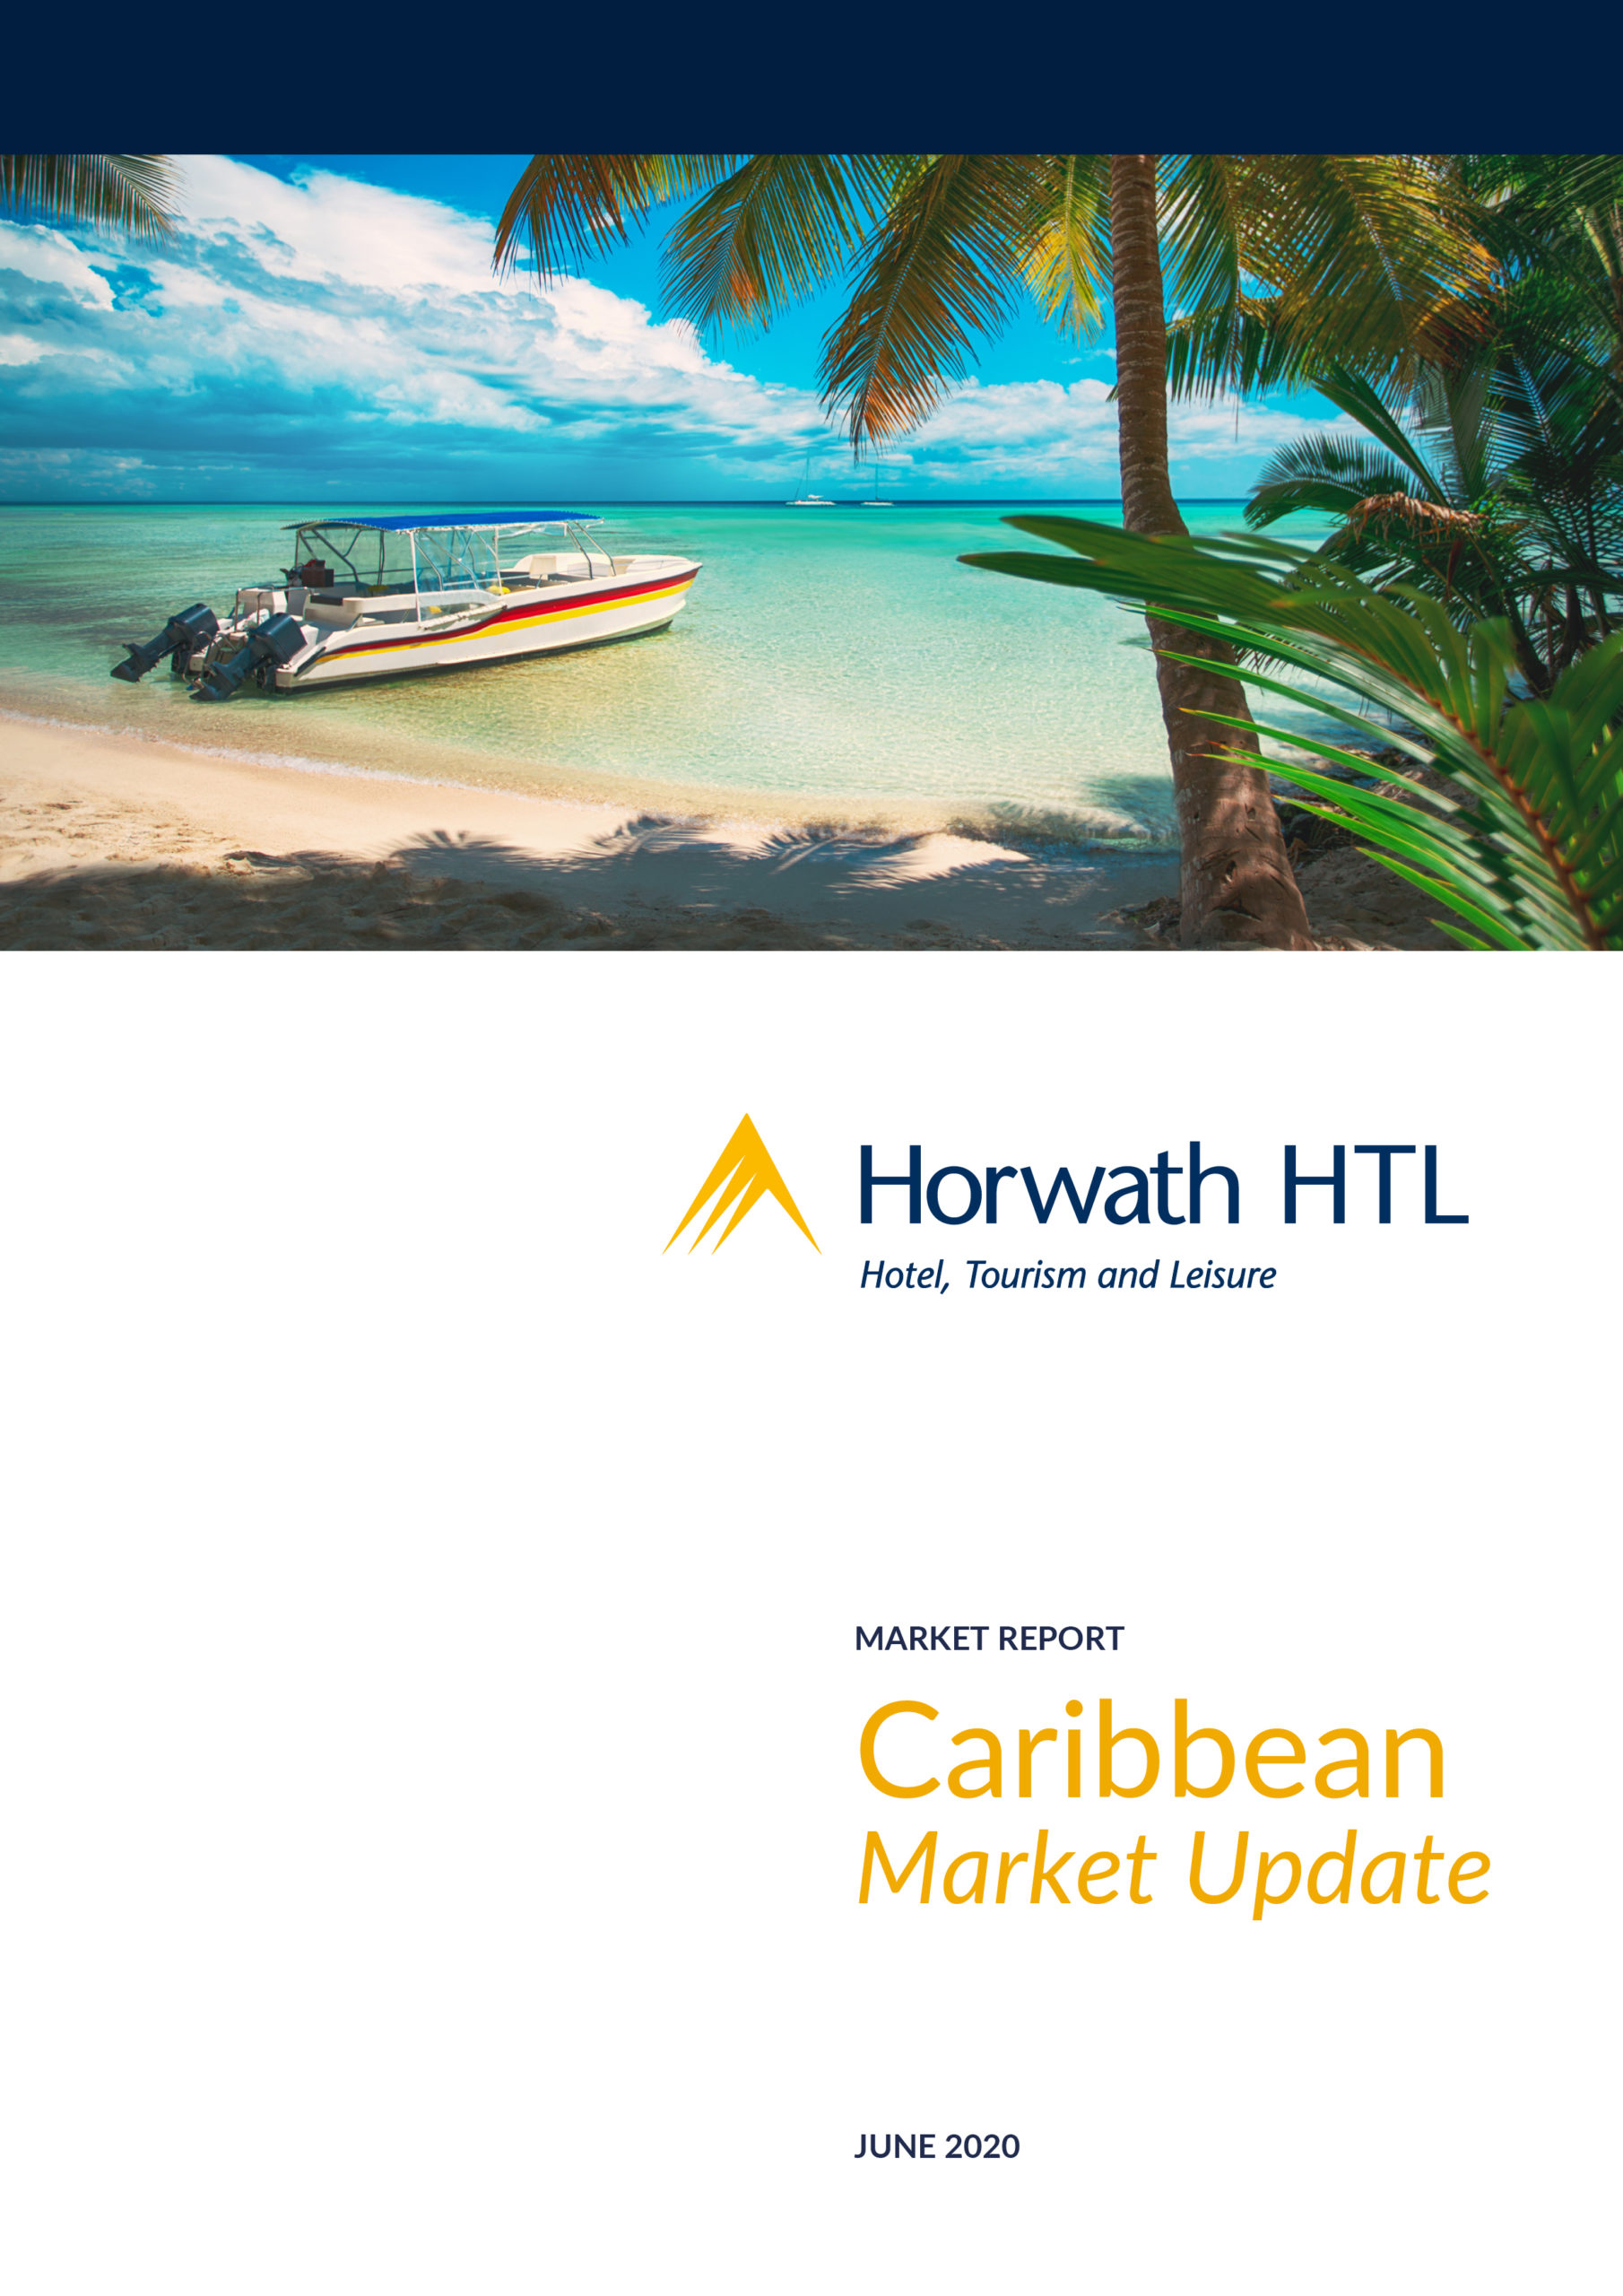 Market Report: The Caribbean